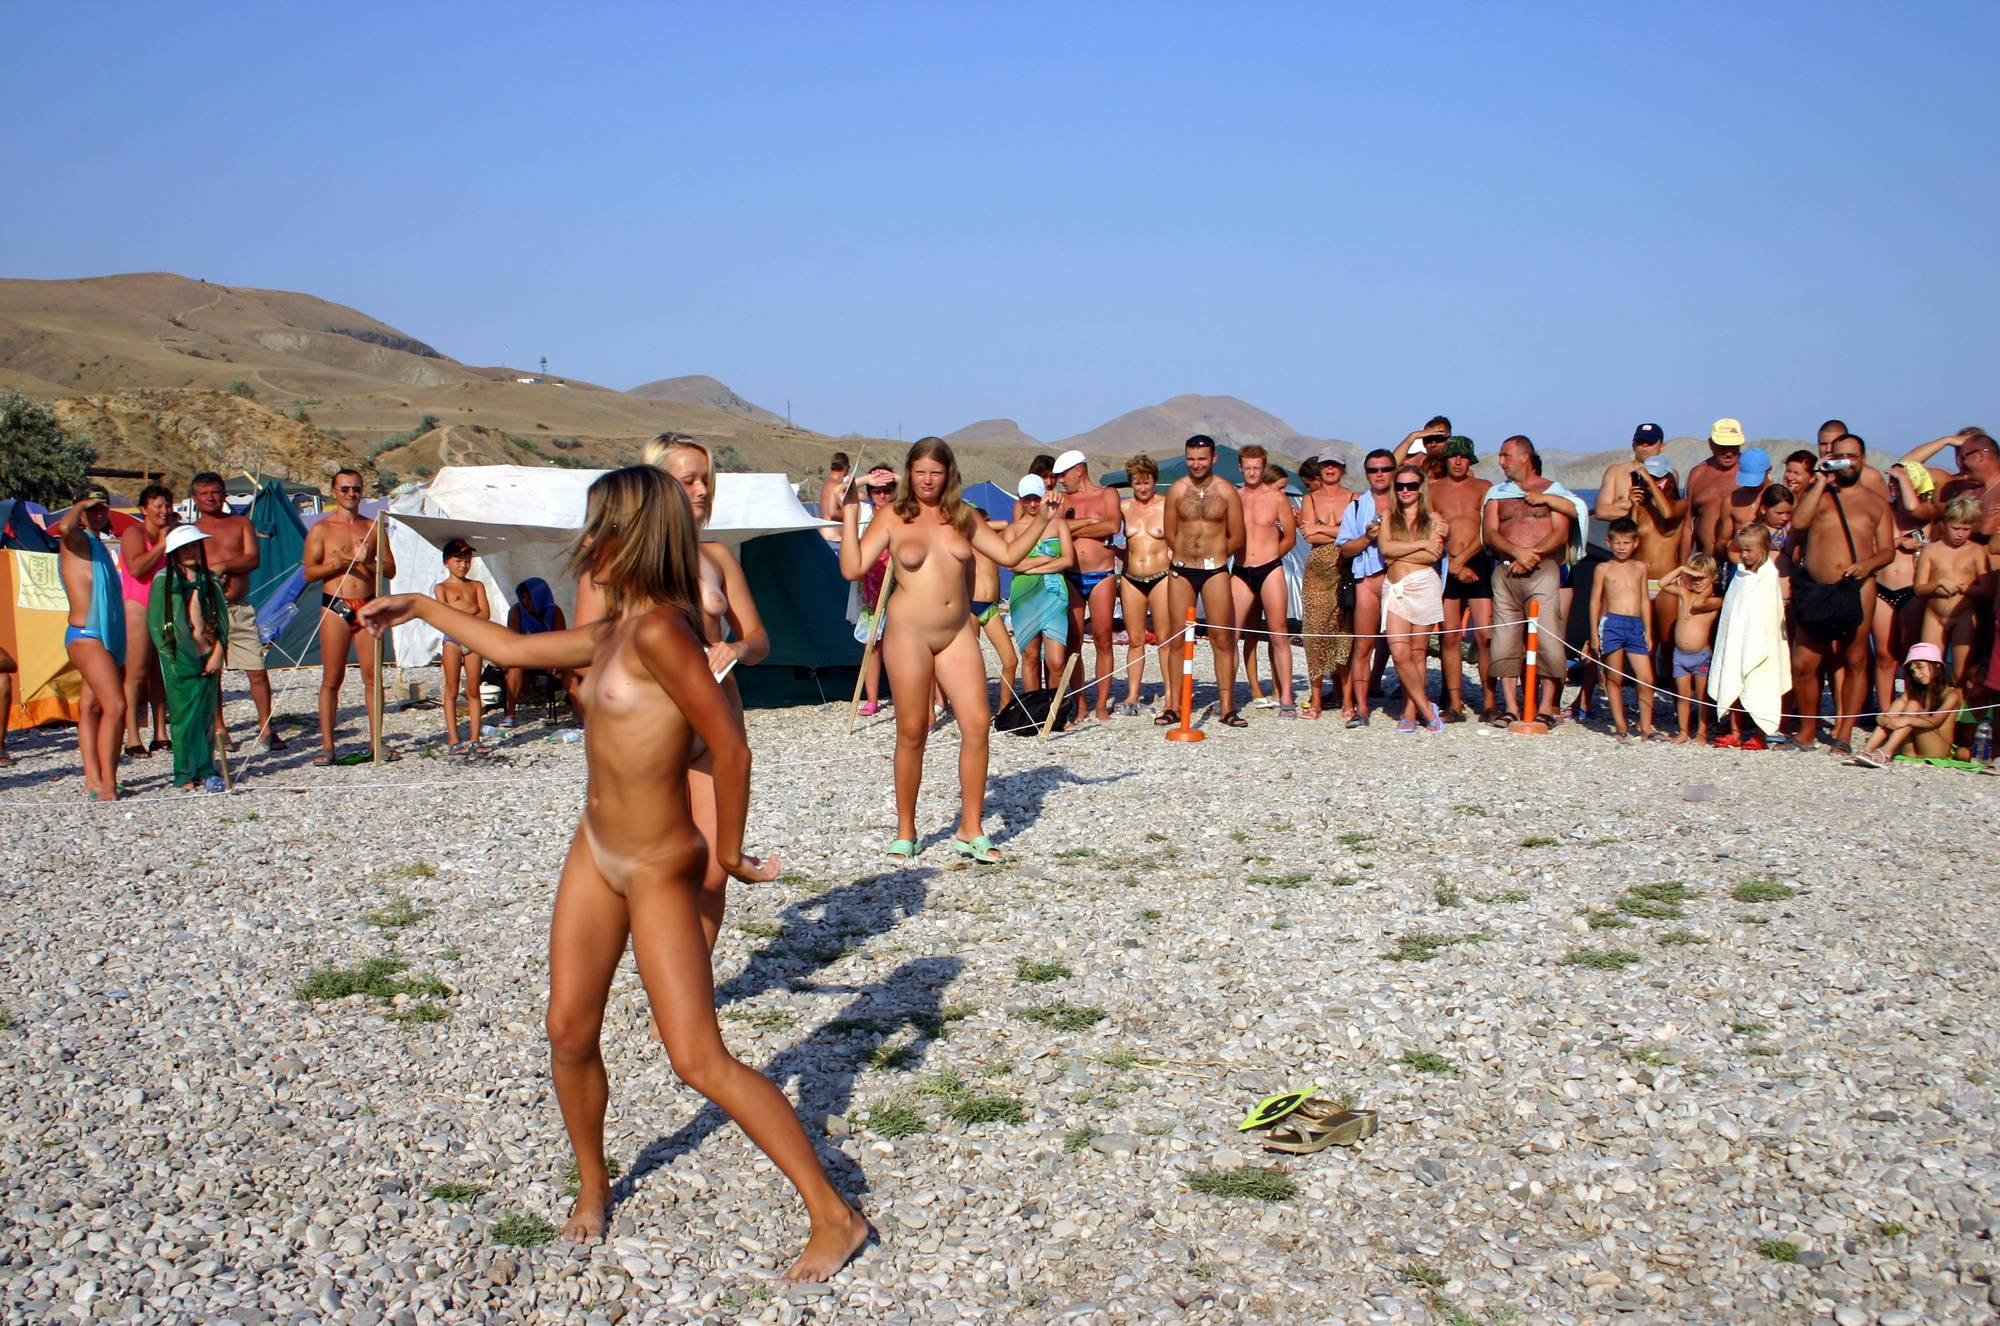 Pure Nudism Pics Pageant Walk and a Dance - 2